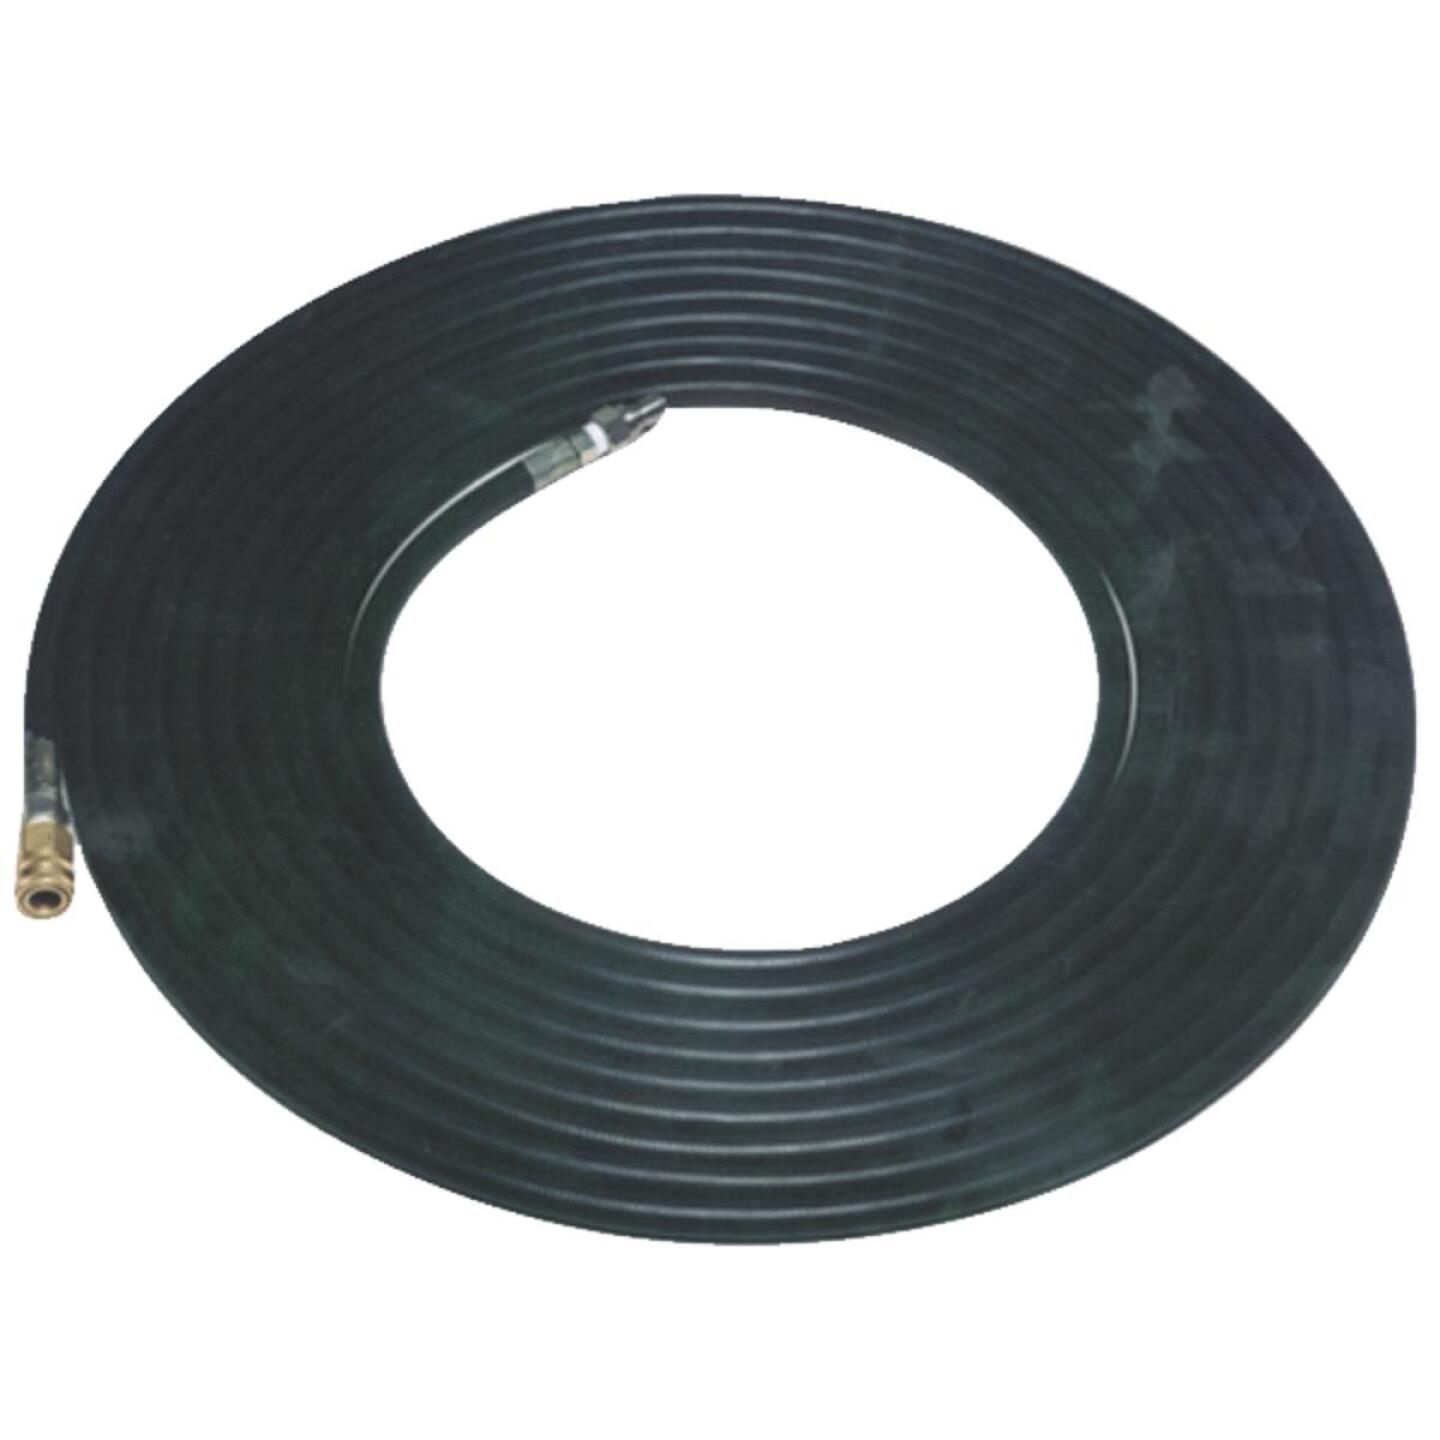 Mi-T-M 1/4 In. x 30 Ft. 2400 psi Pressure Washer Hose Image 1